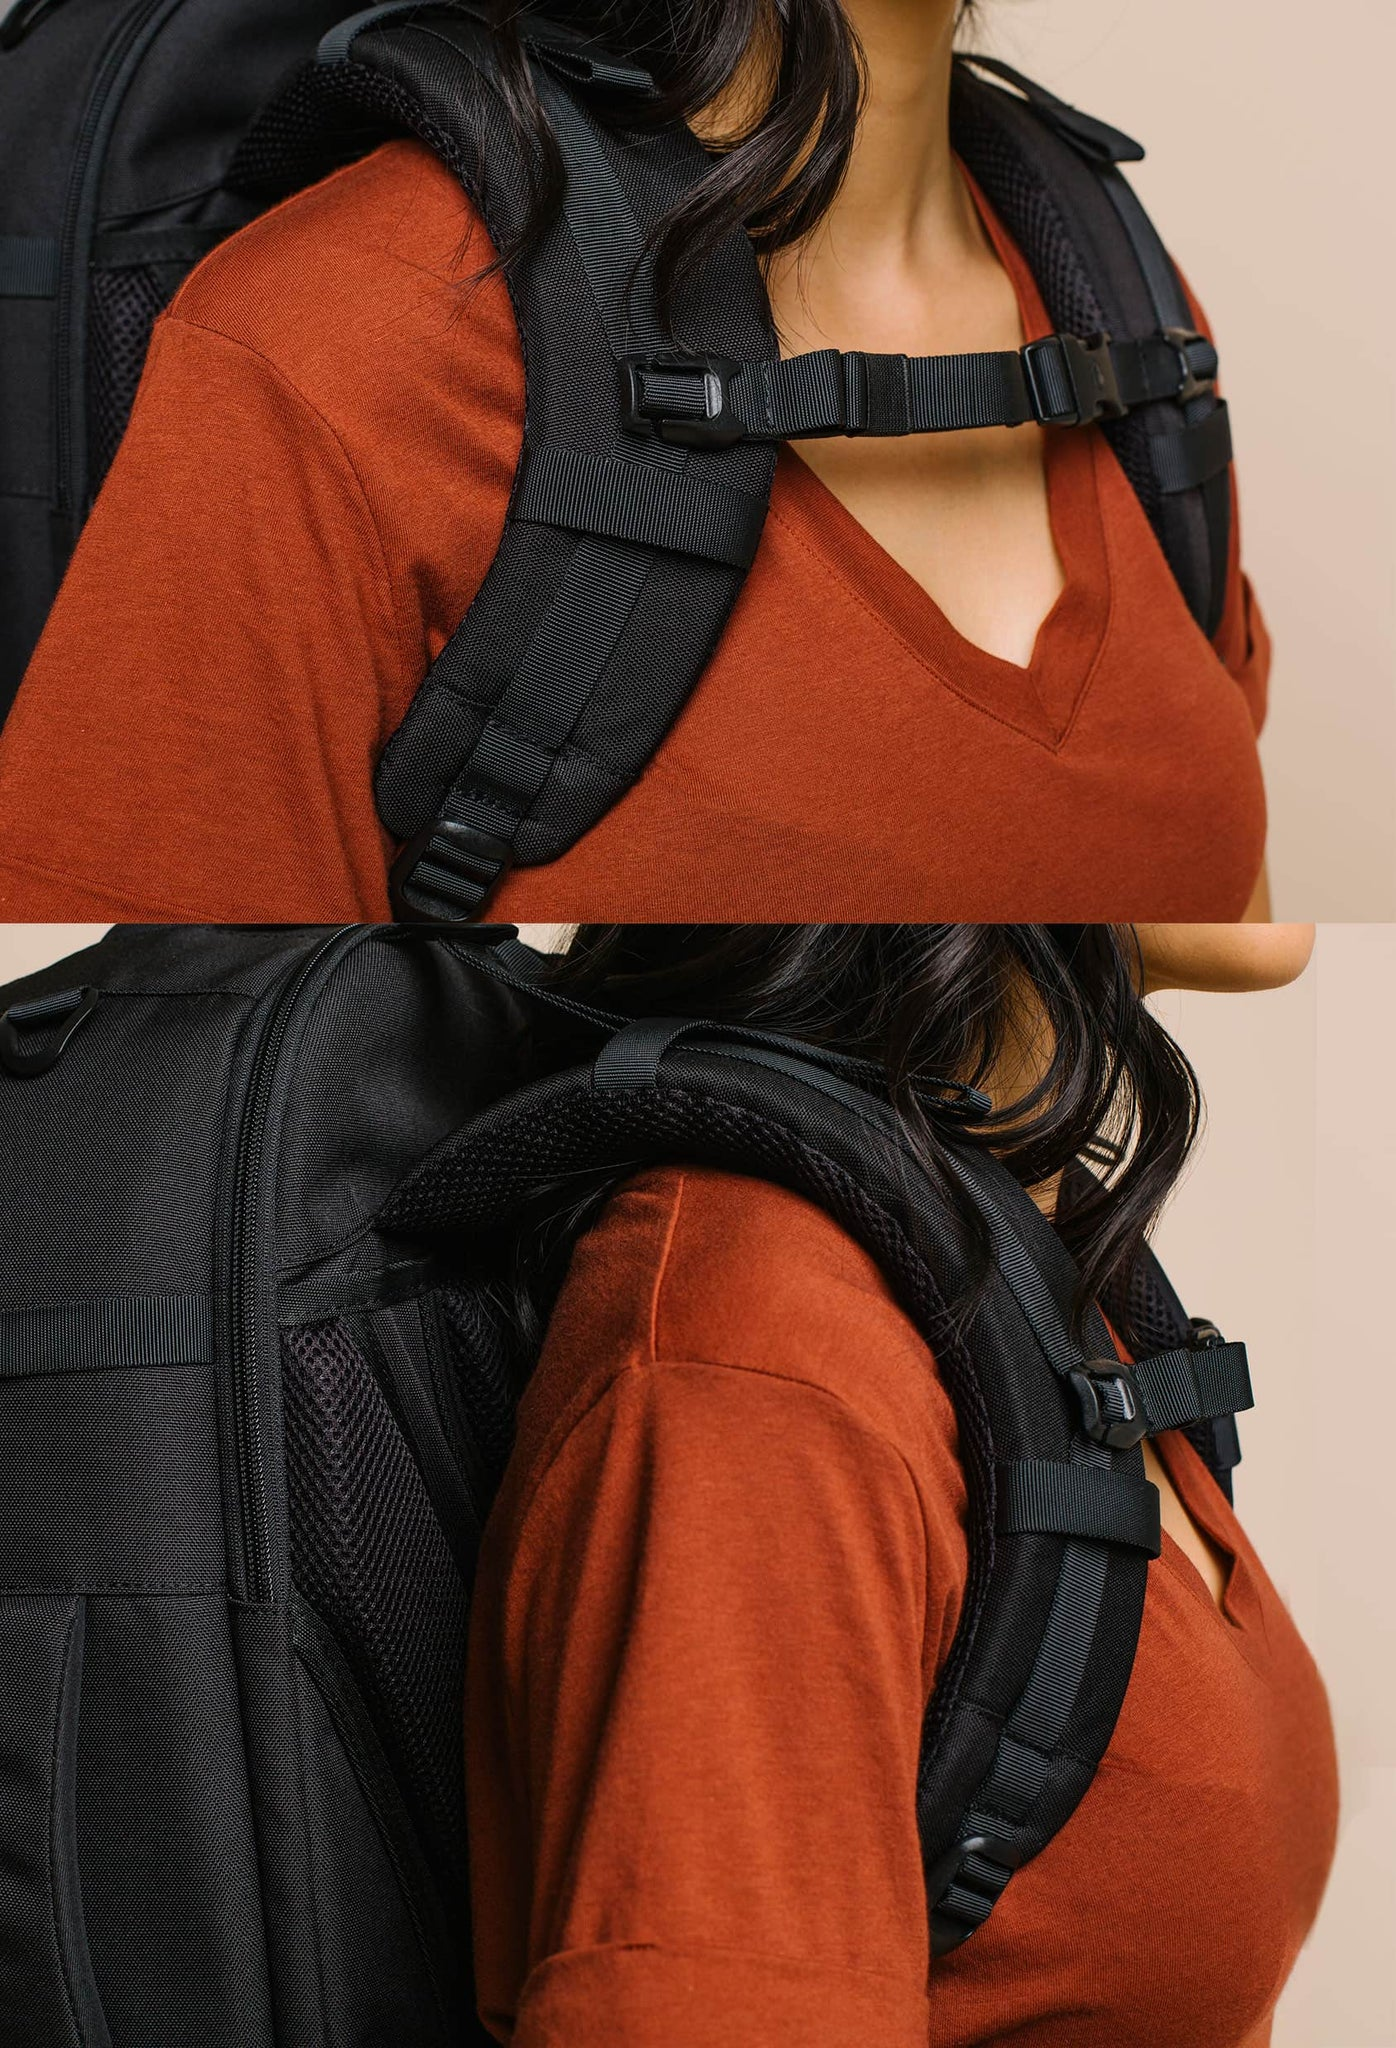 product/ Adjust the chest strap to hit below your collarbone